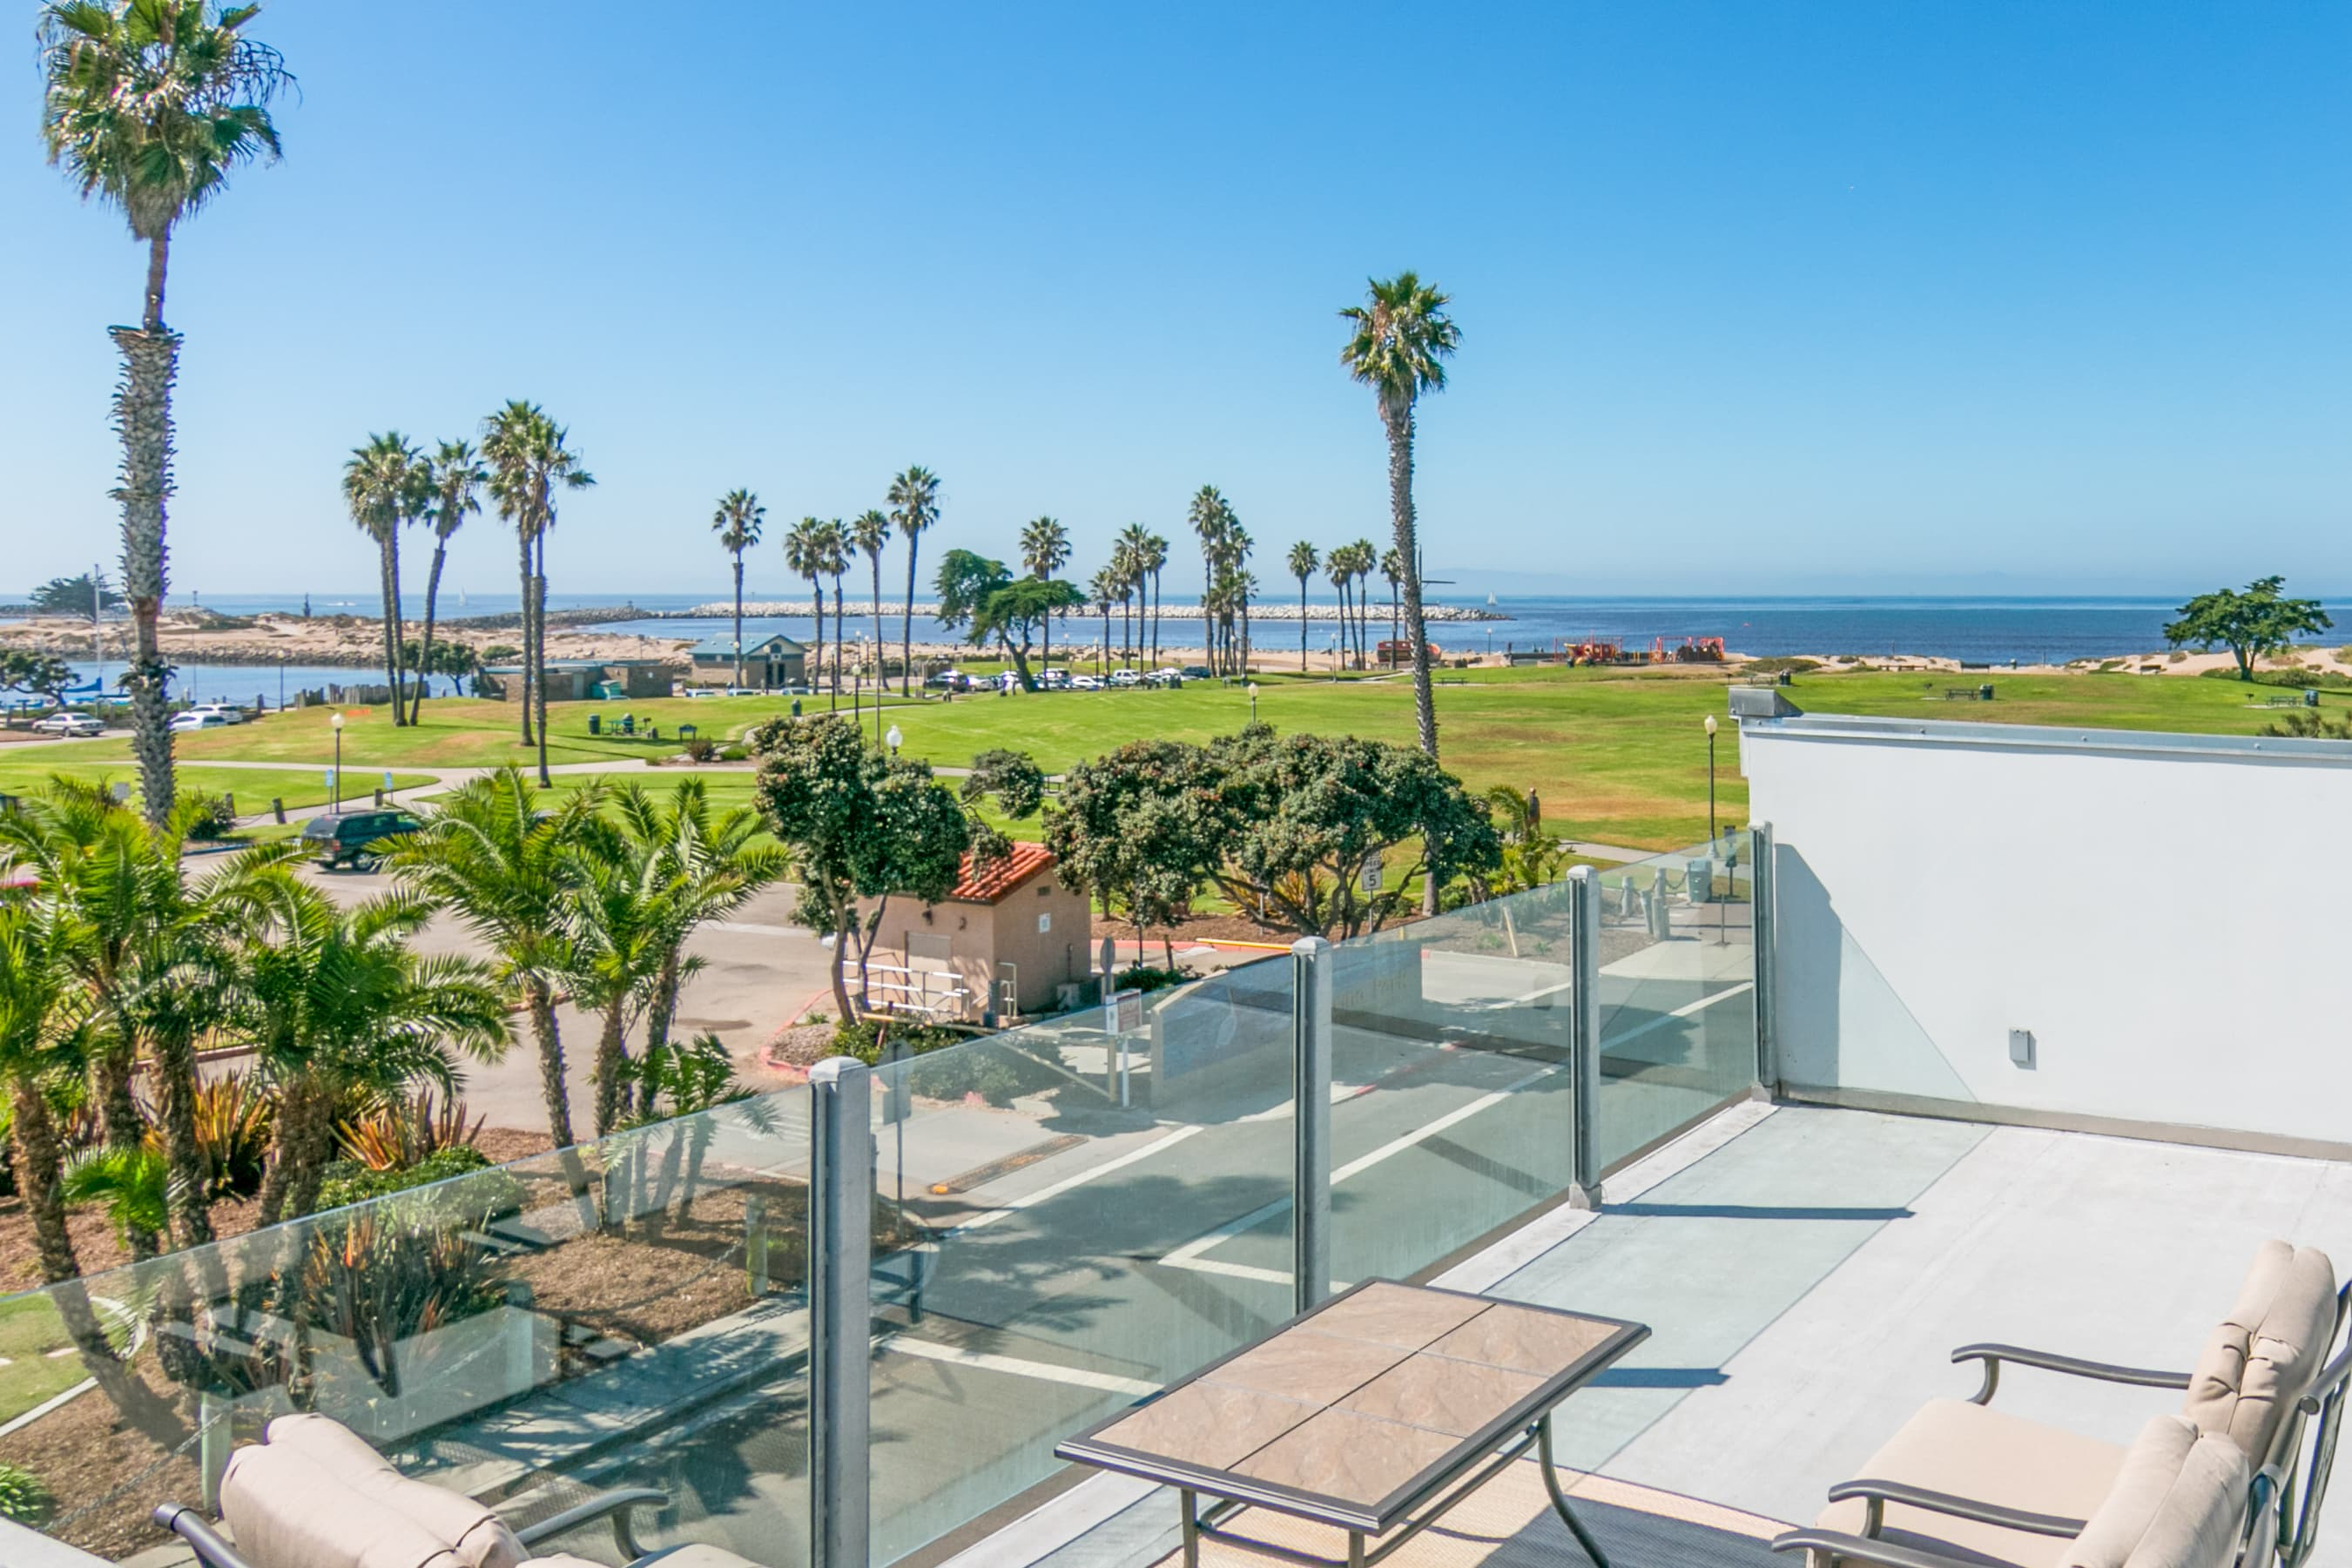 Welcome to Ventura! Relax and enjoy the ocean views from the rooftop deck. This property is professionally managed by TurnKey Vacation Rentals.